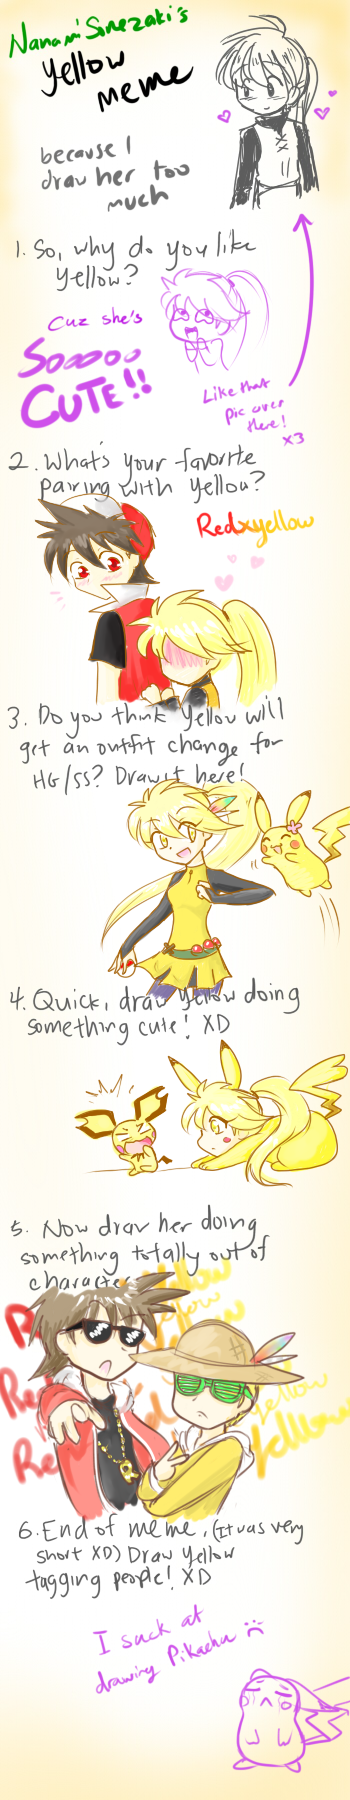 Yellow Meme by firehorse6